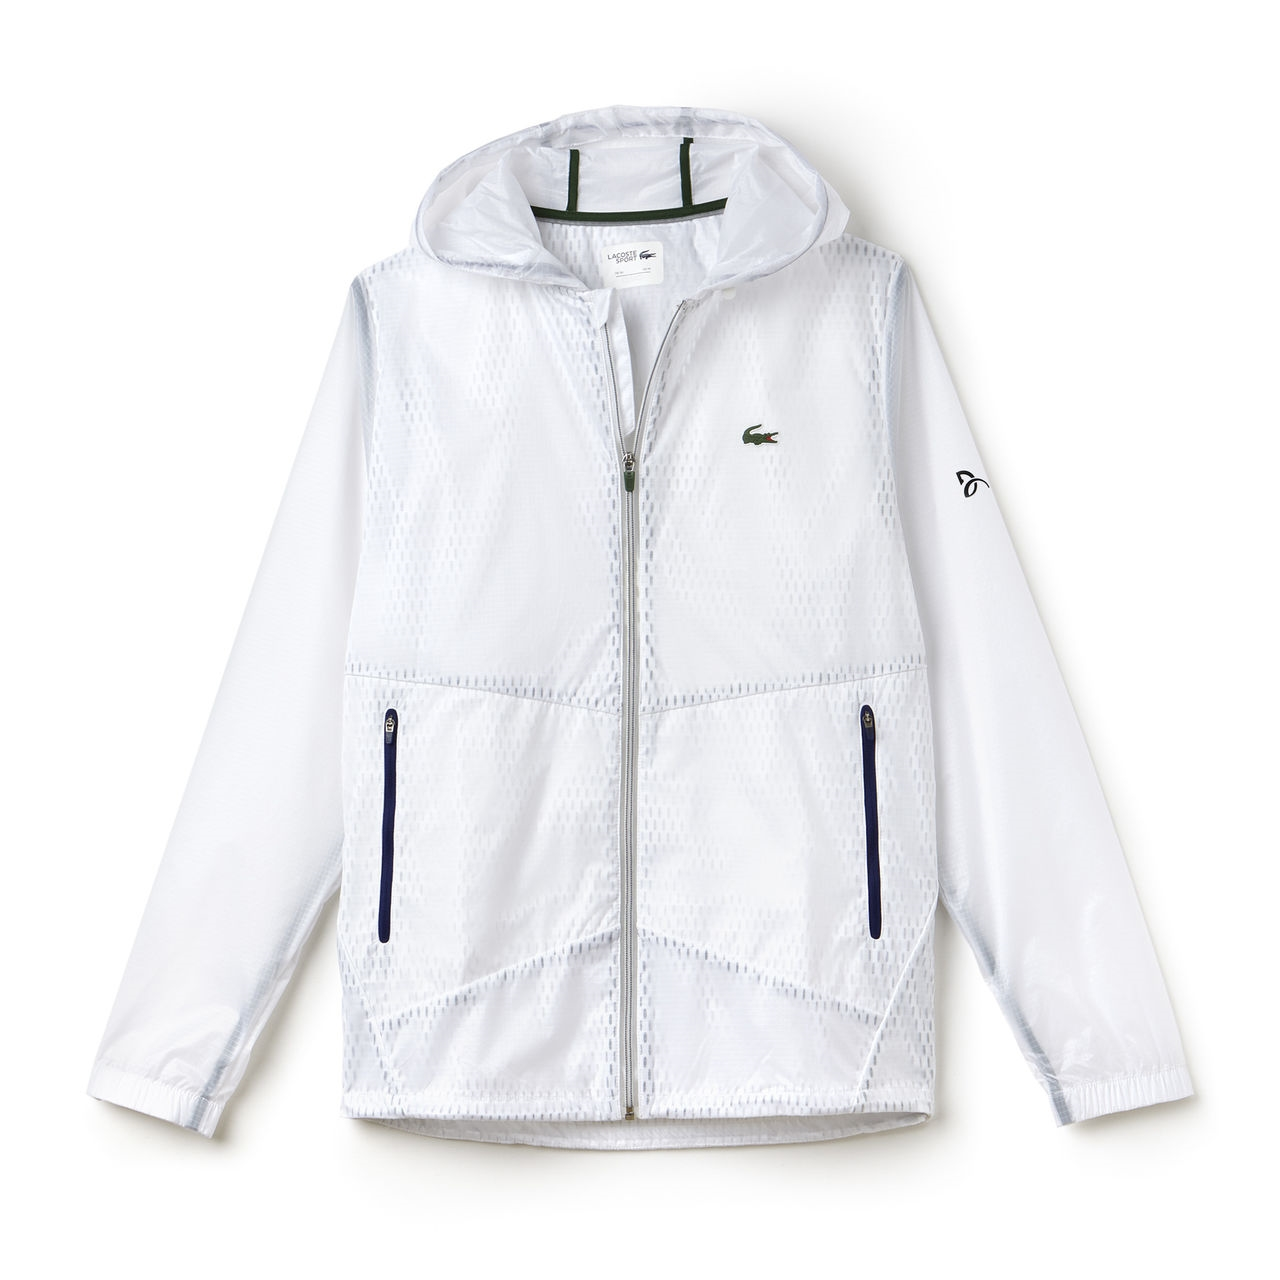 Lacoste Novak Djokovic Jacket Exclusive Edition White L